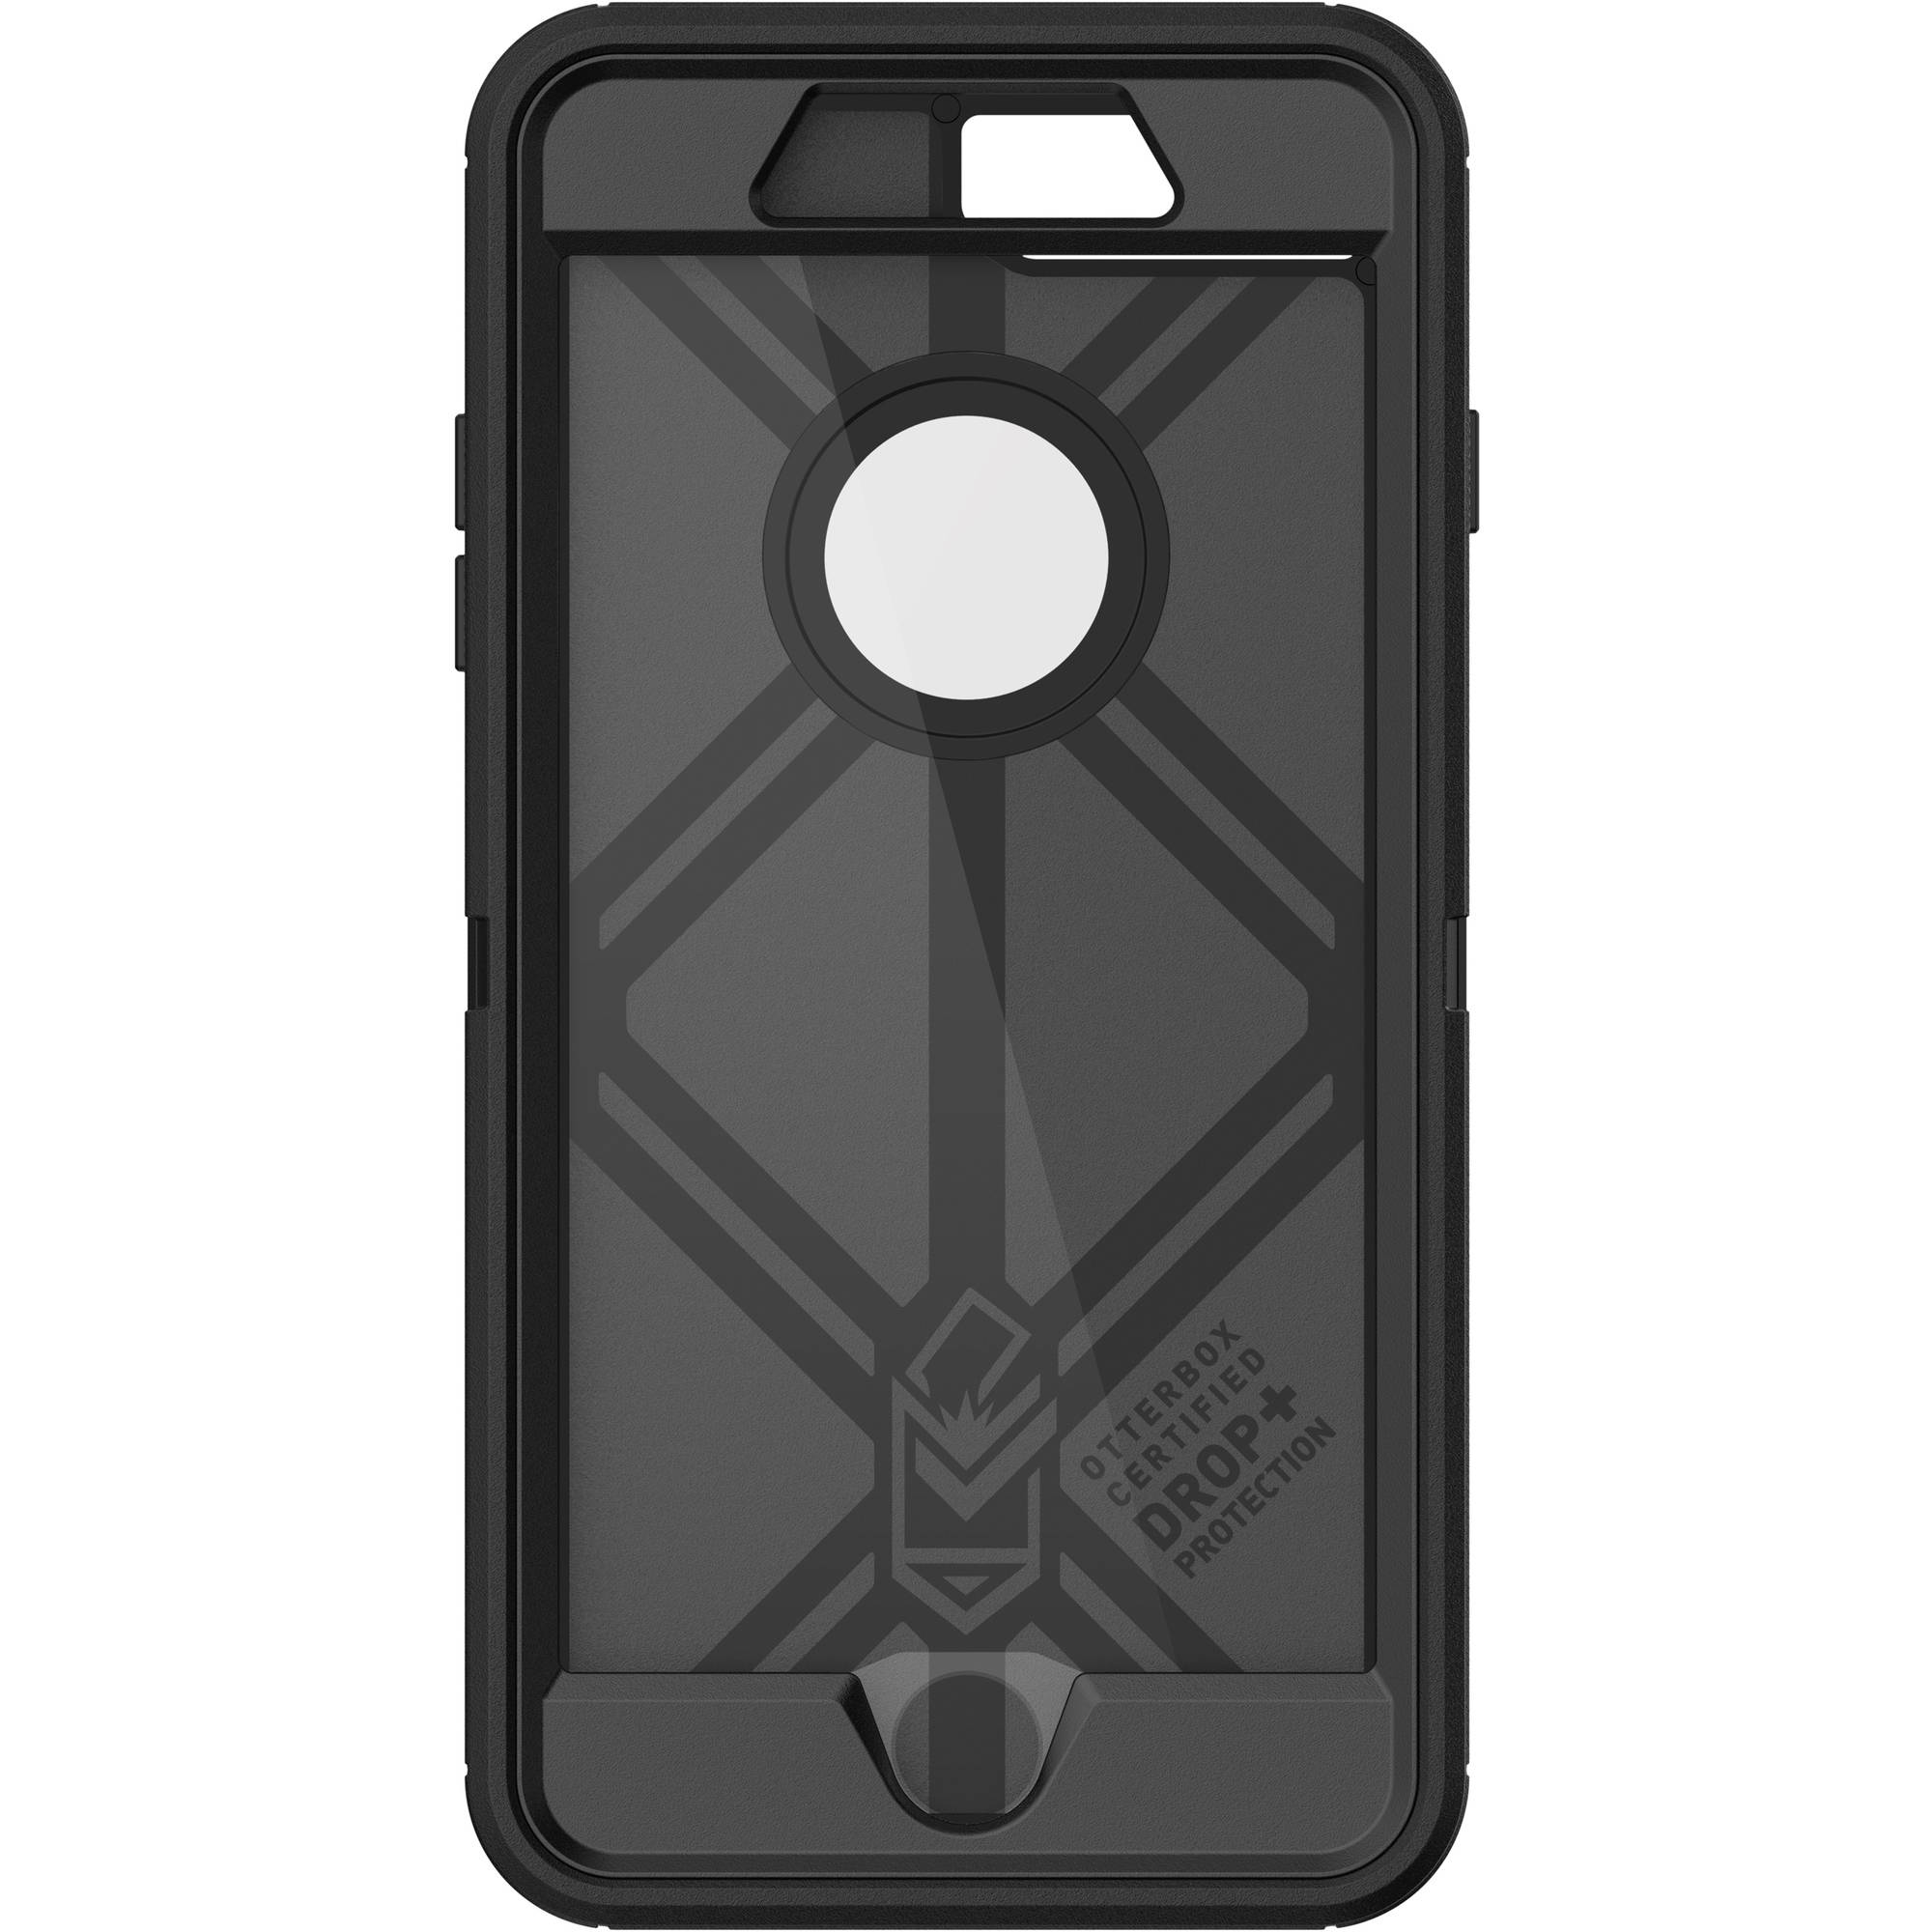 buy online 1a833 4d45c OtterBox Defender Series Case for Apple iPhone 7 Plus - Walmart.com